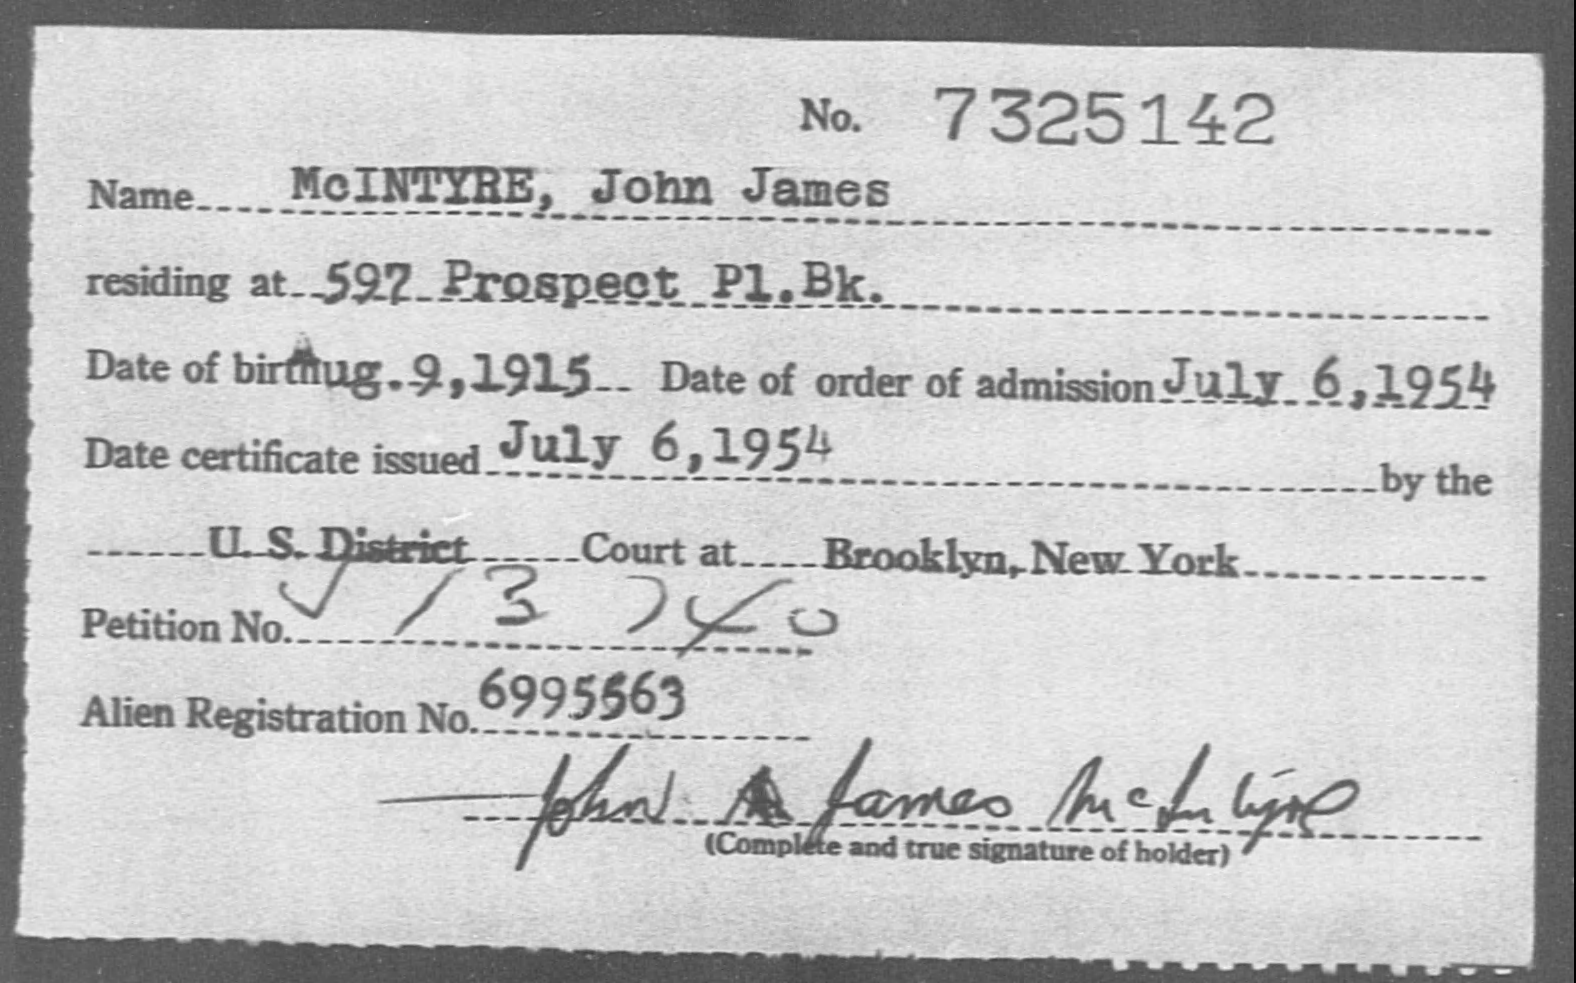 McINTYRE, John James - Born: 1915, Naturalized: 1954